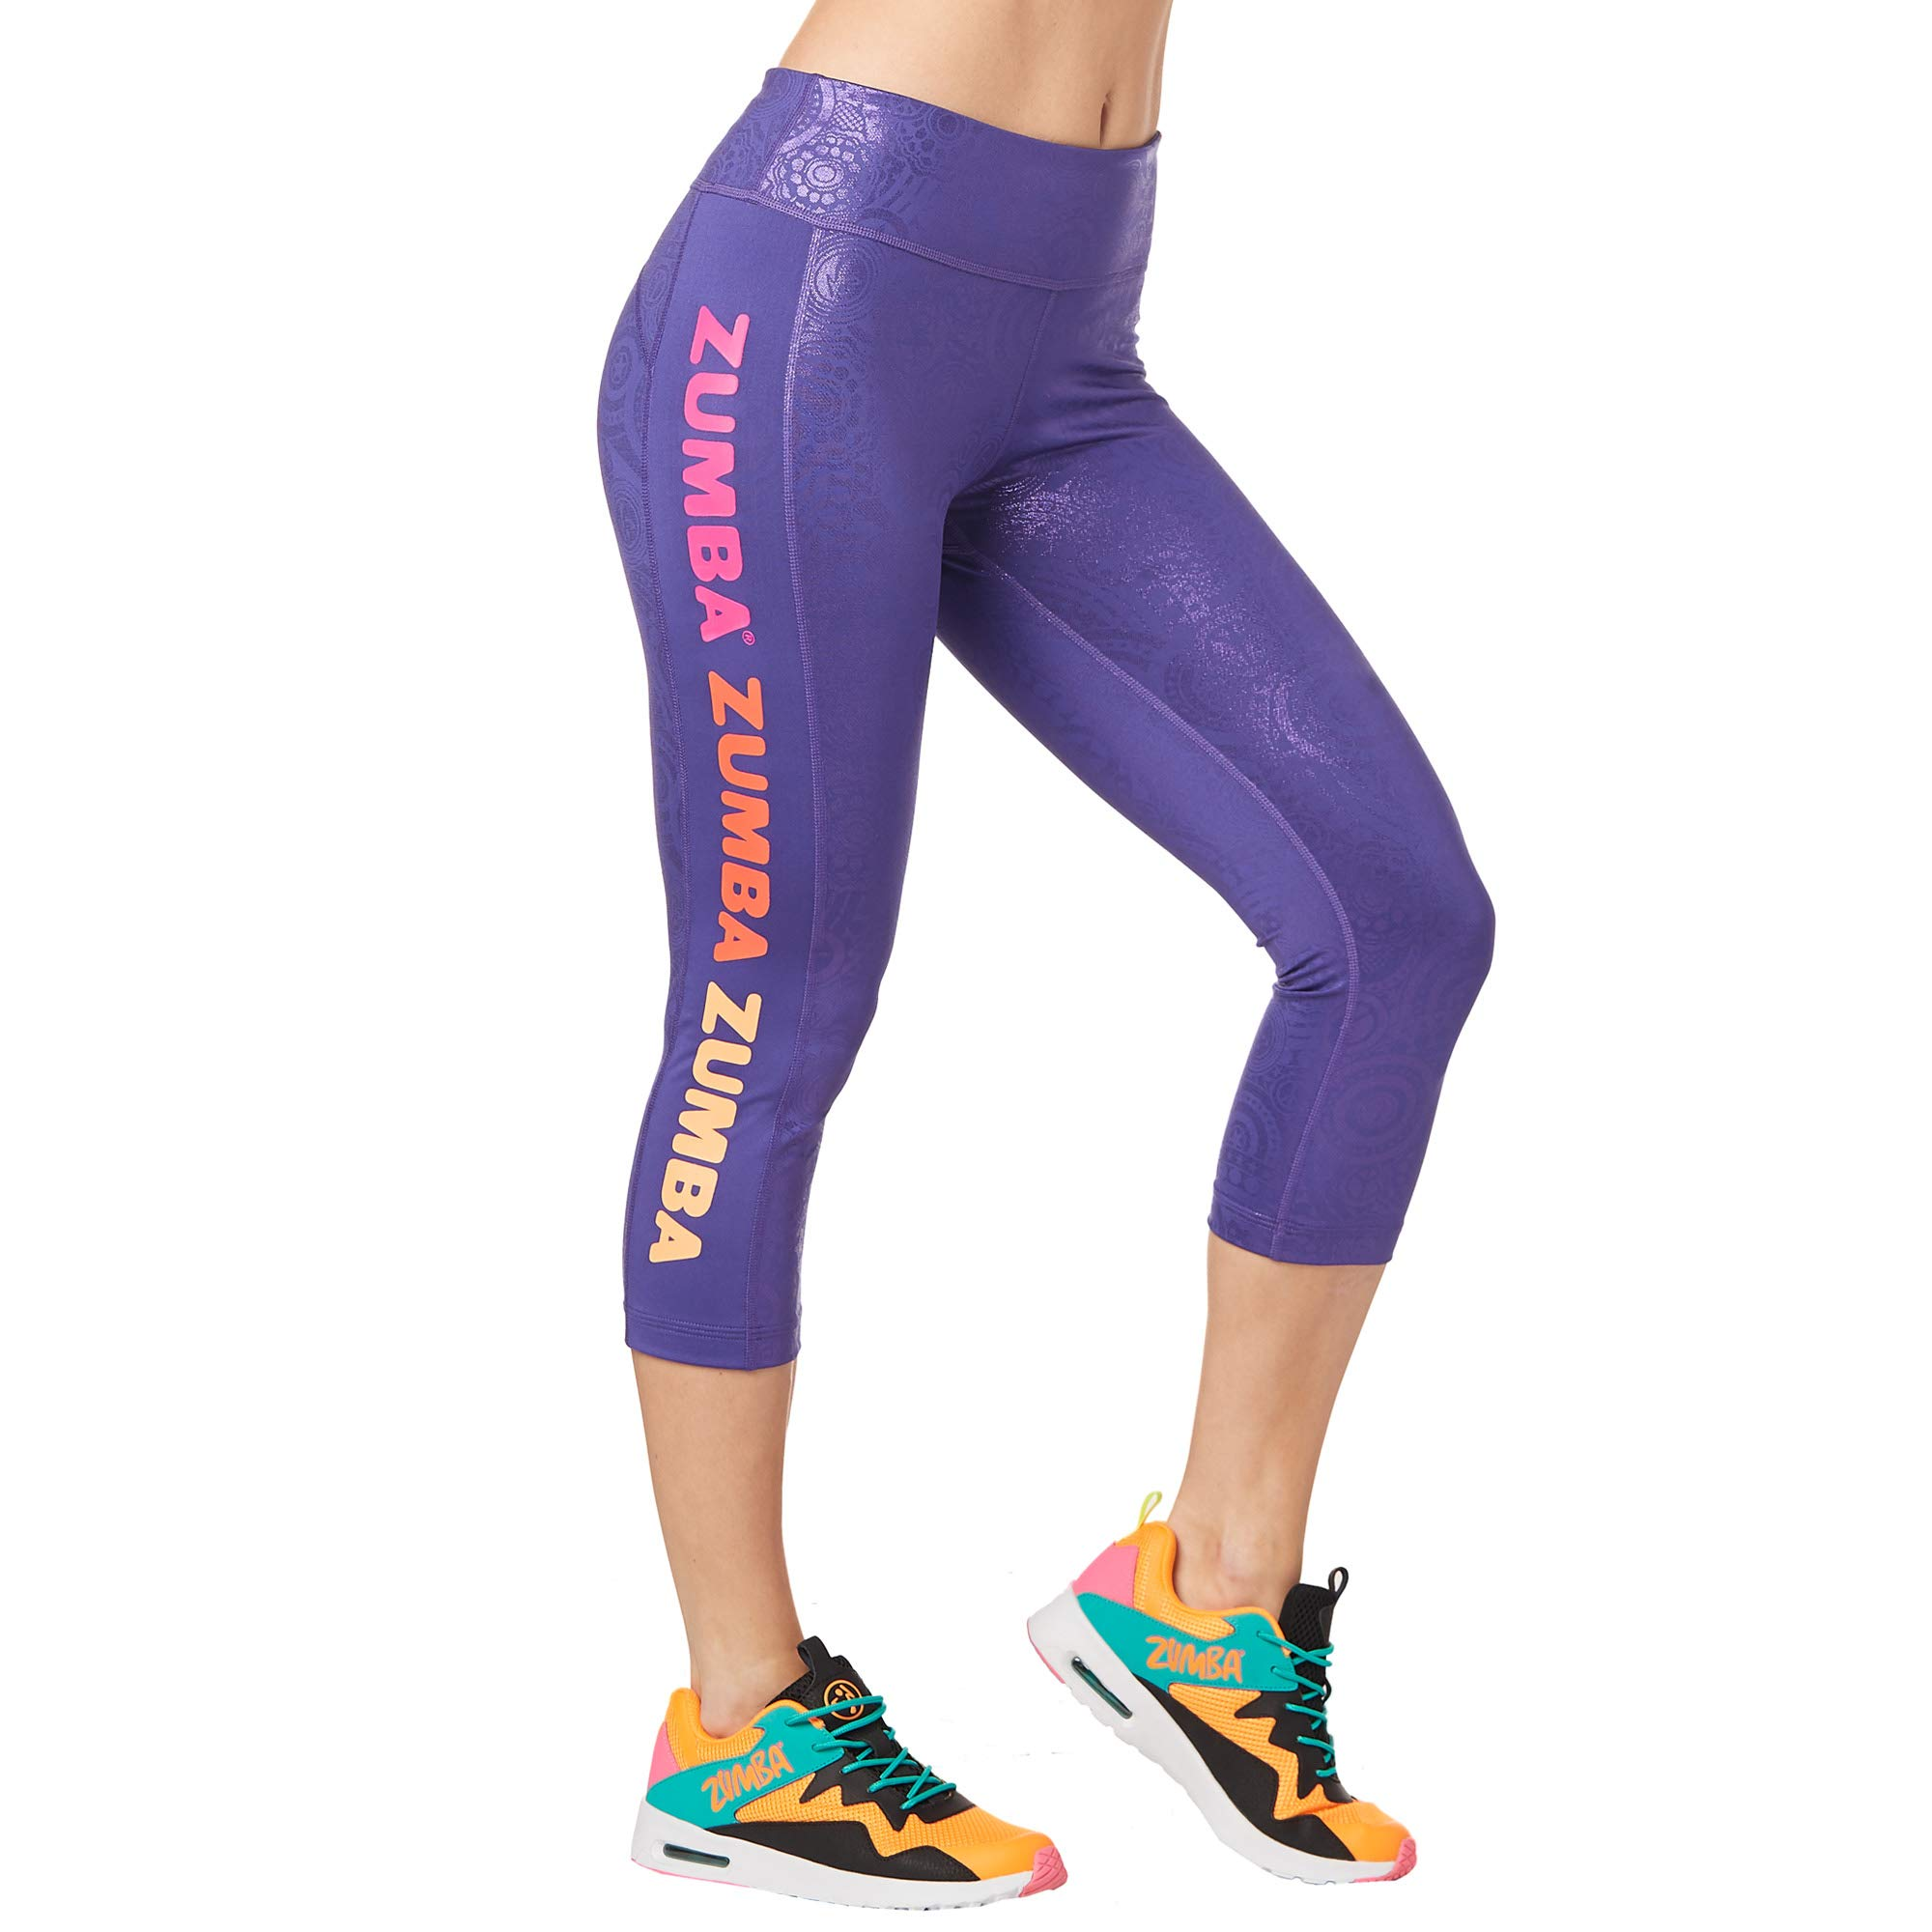 Zumba Dance Fitness Compression Pants Workout Print Capri Leggings for Women